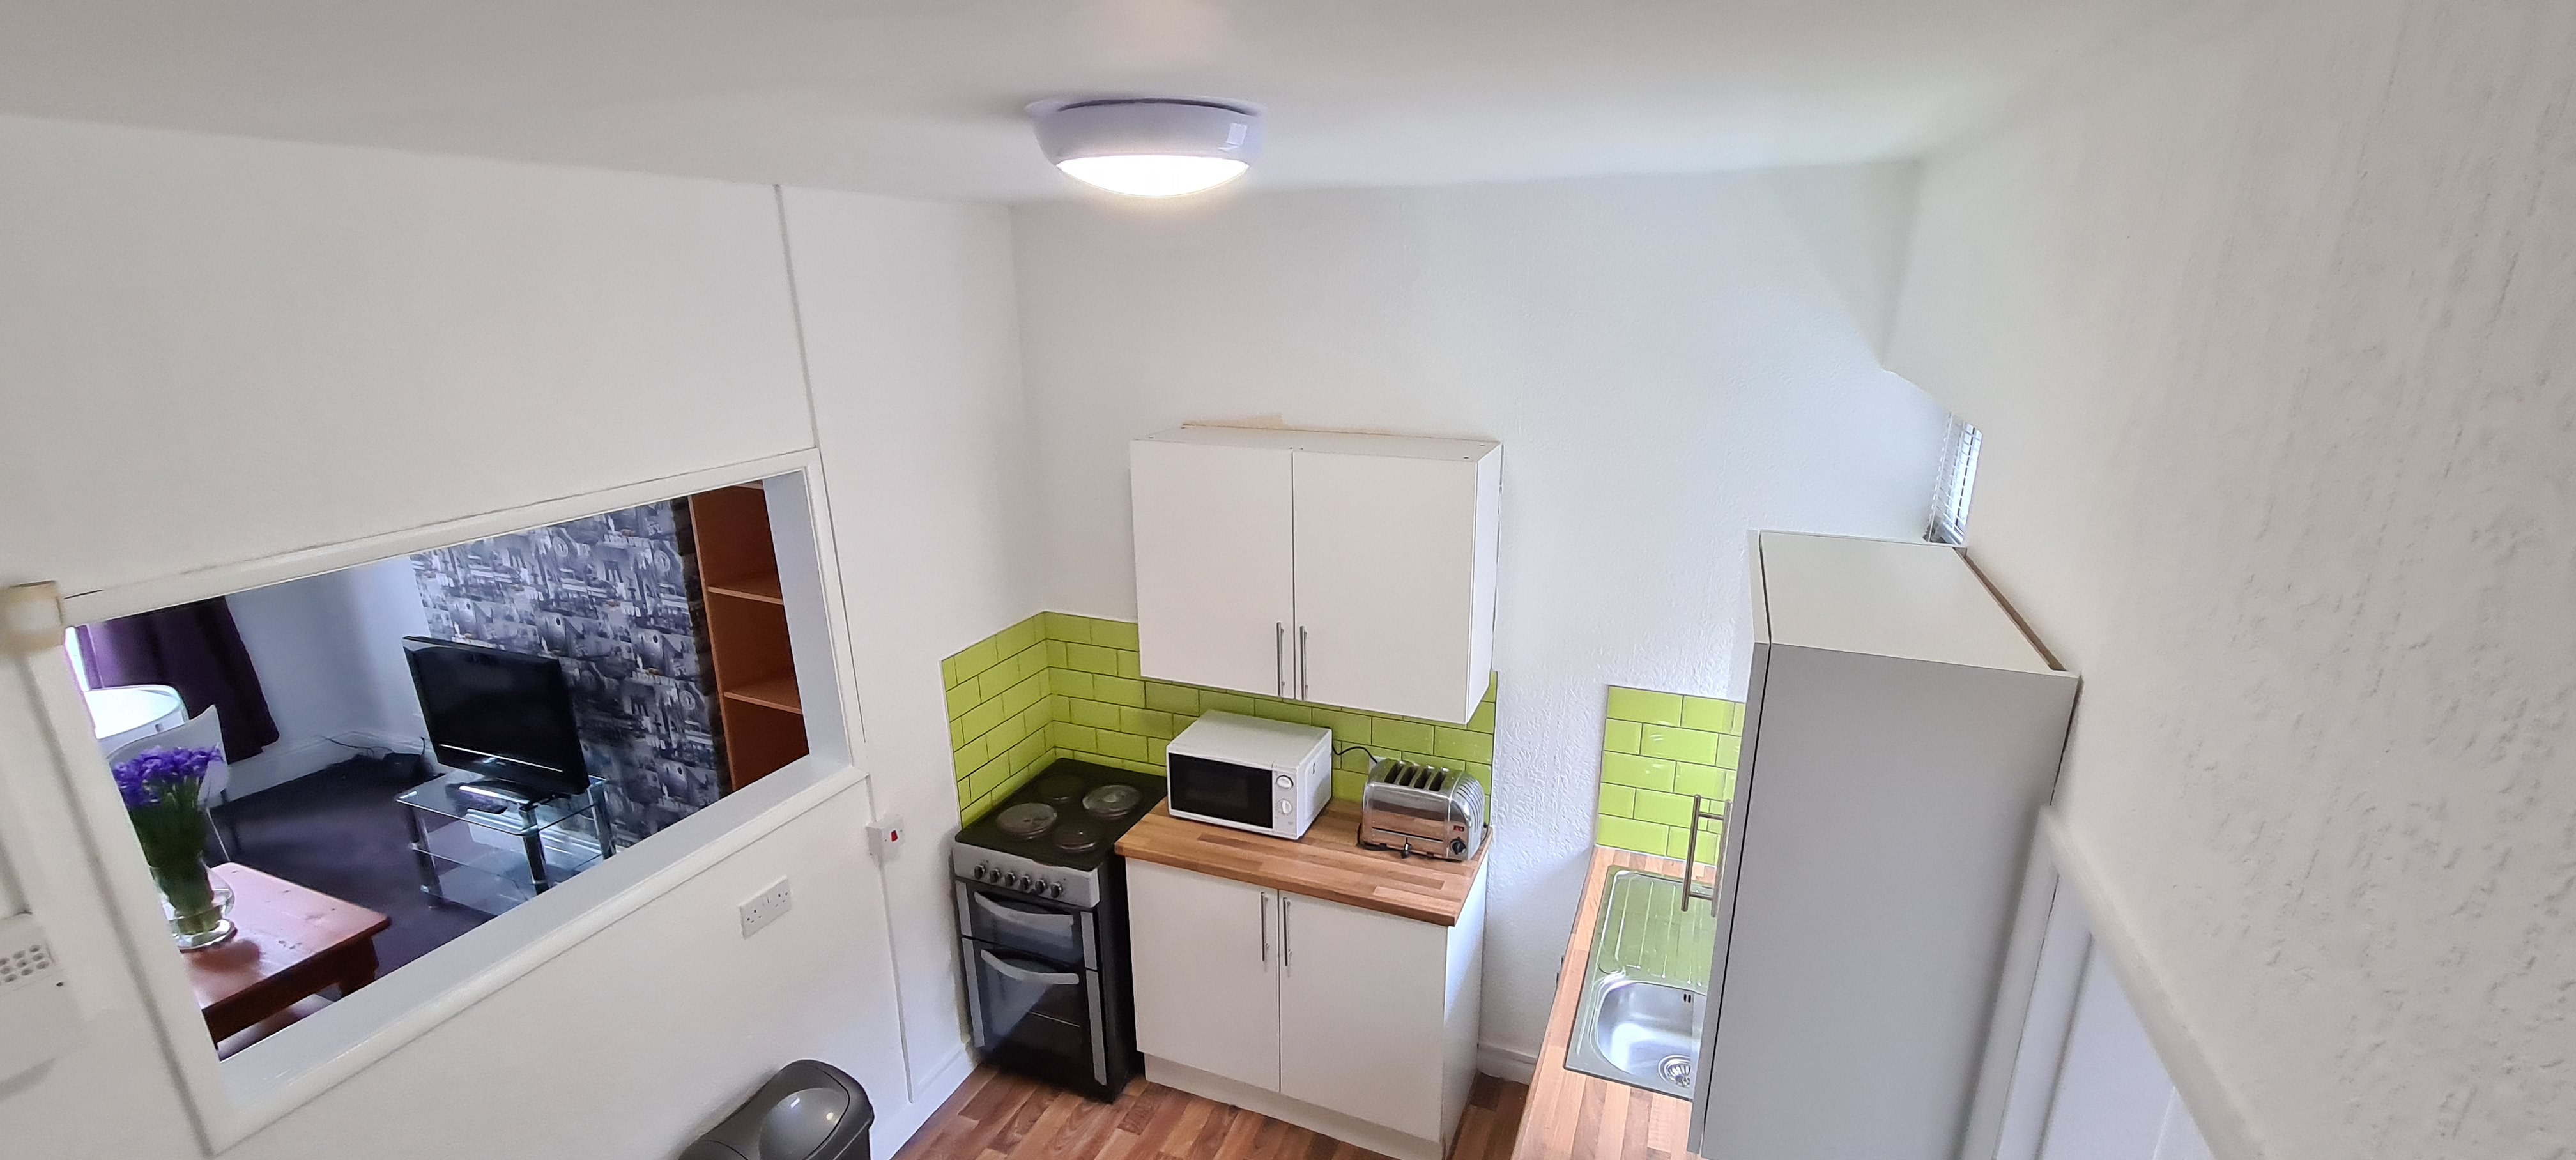 Longman Jones Student Accommodation Available academic year 21/22! The Cedars, Sidmouth Street (Ref: 1523)